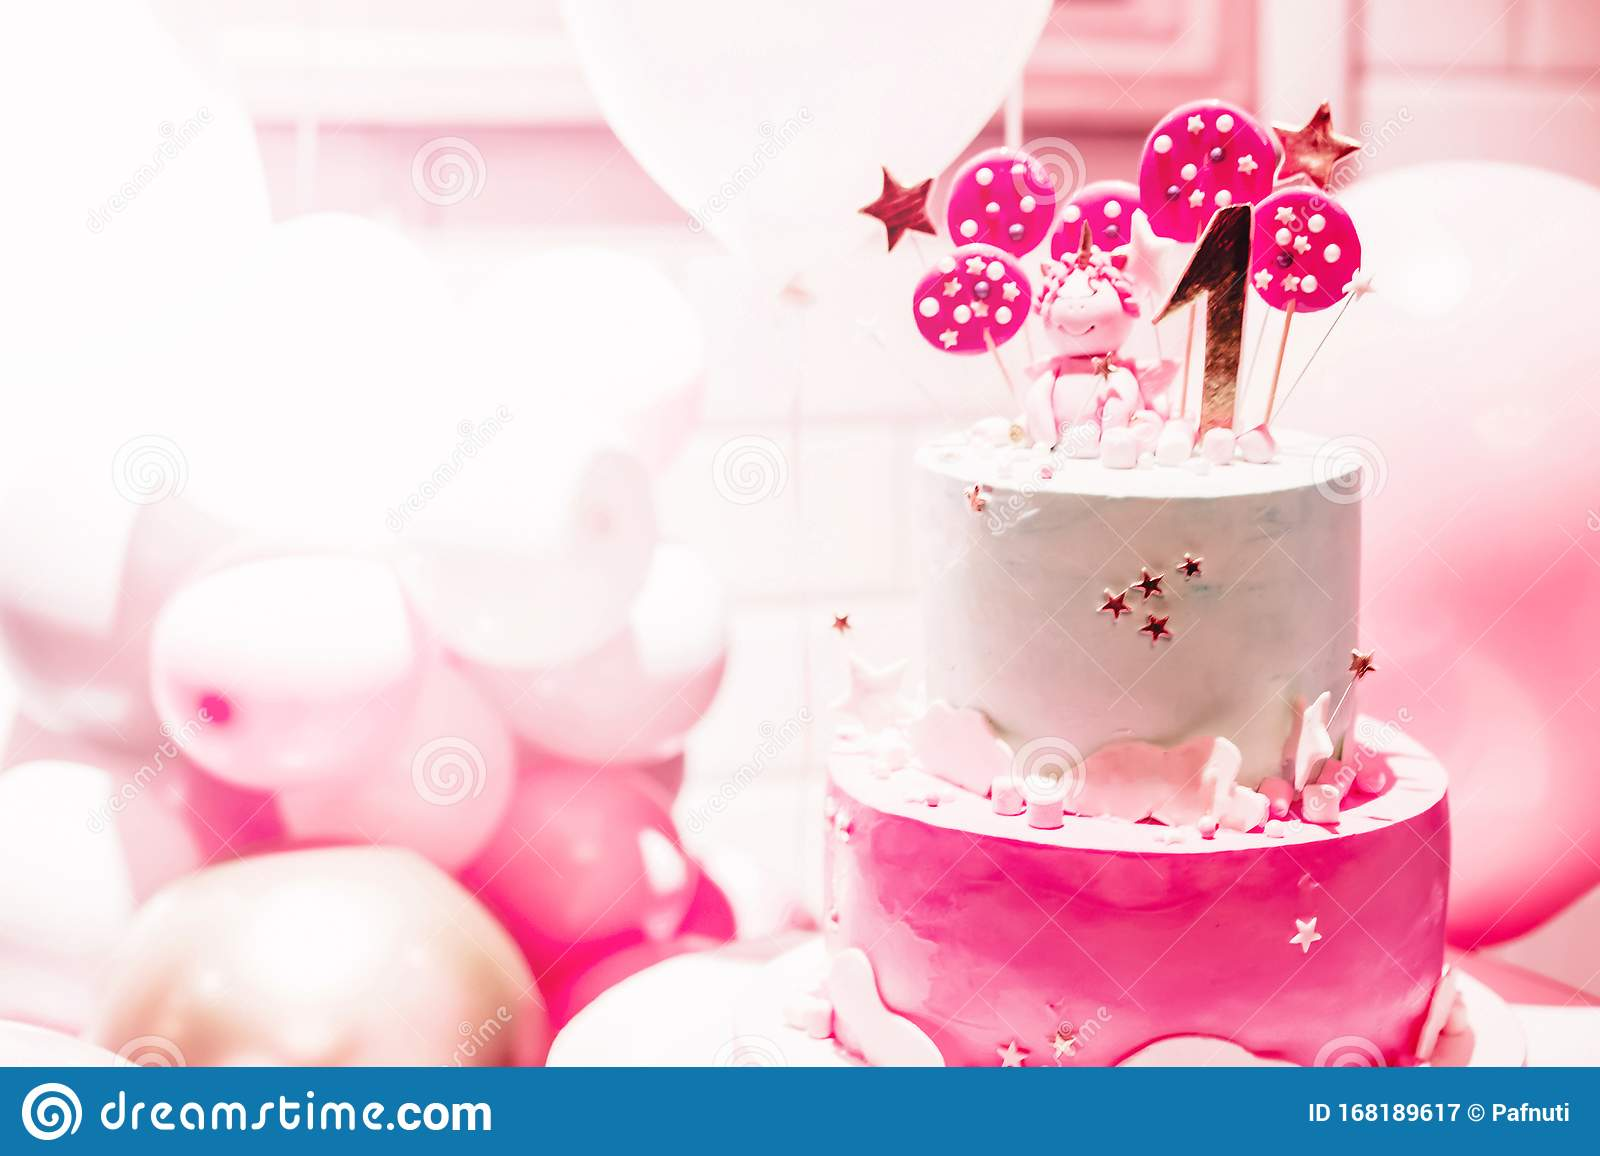 Pink Cake With Pink Balloons For Birthday On Pink Background The First Day Of Birth The Girl Or Boy Of 1 Year Interior Pink Stock Image Image Of Copy Birthday 168189617